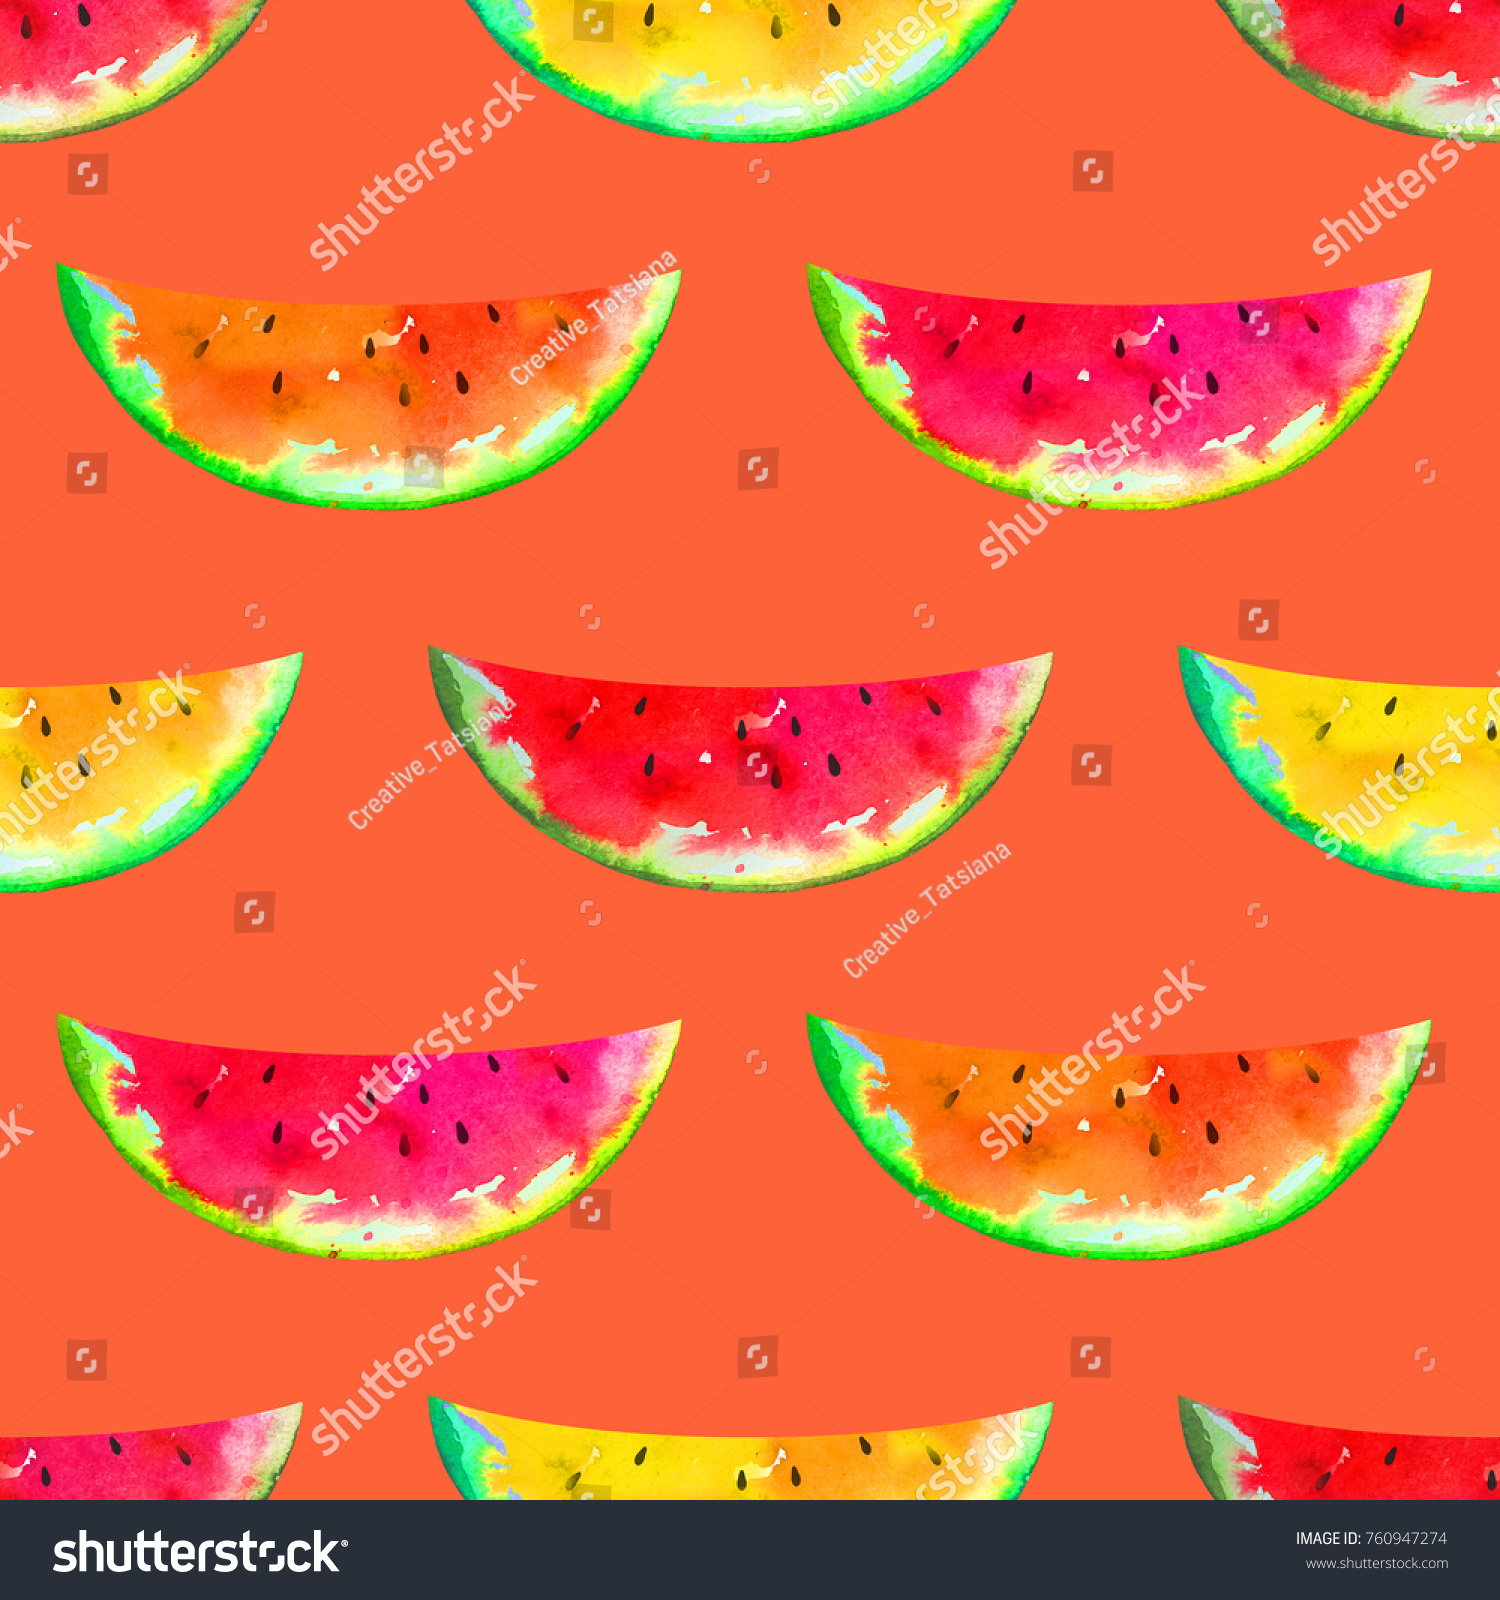 Watermelon Colorful Slices Seamless Watercolor Summer Stock ...